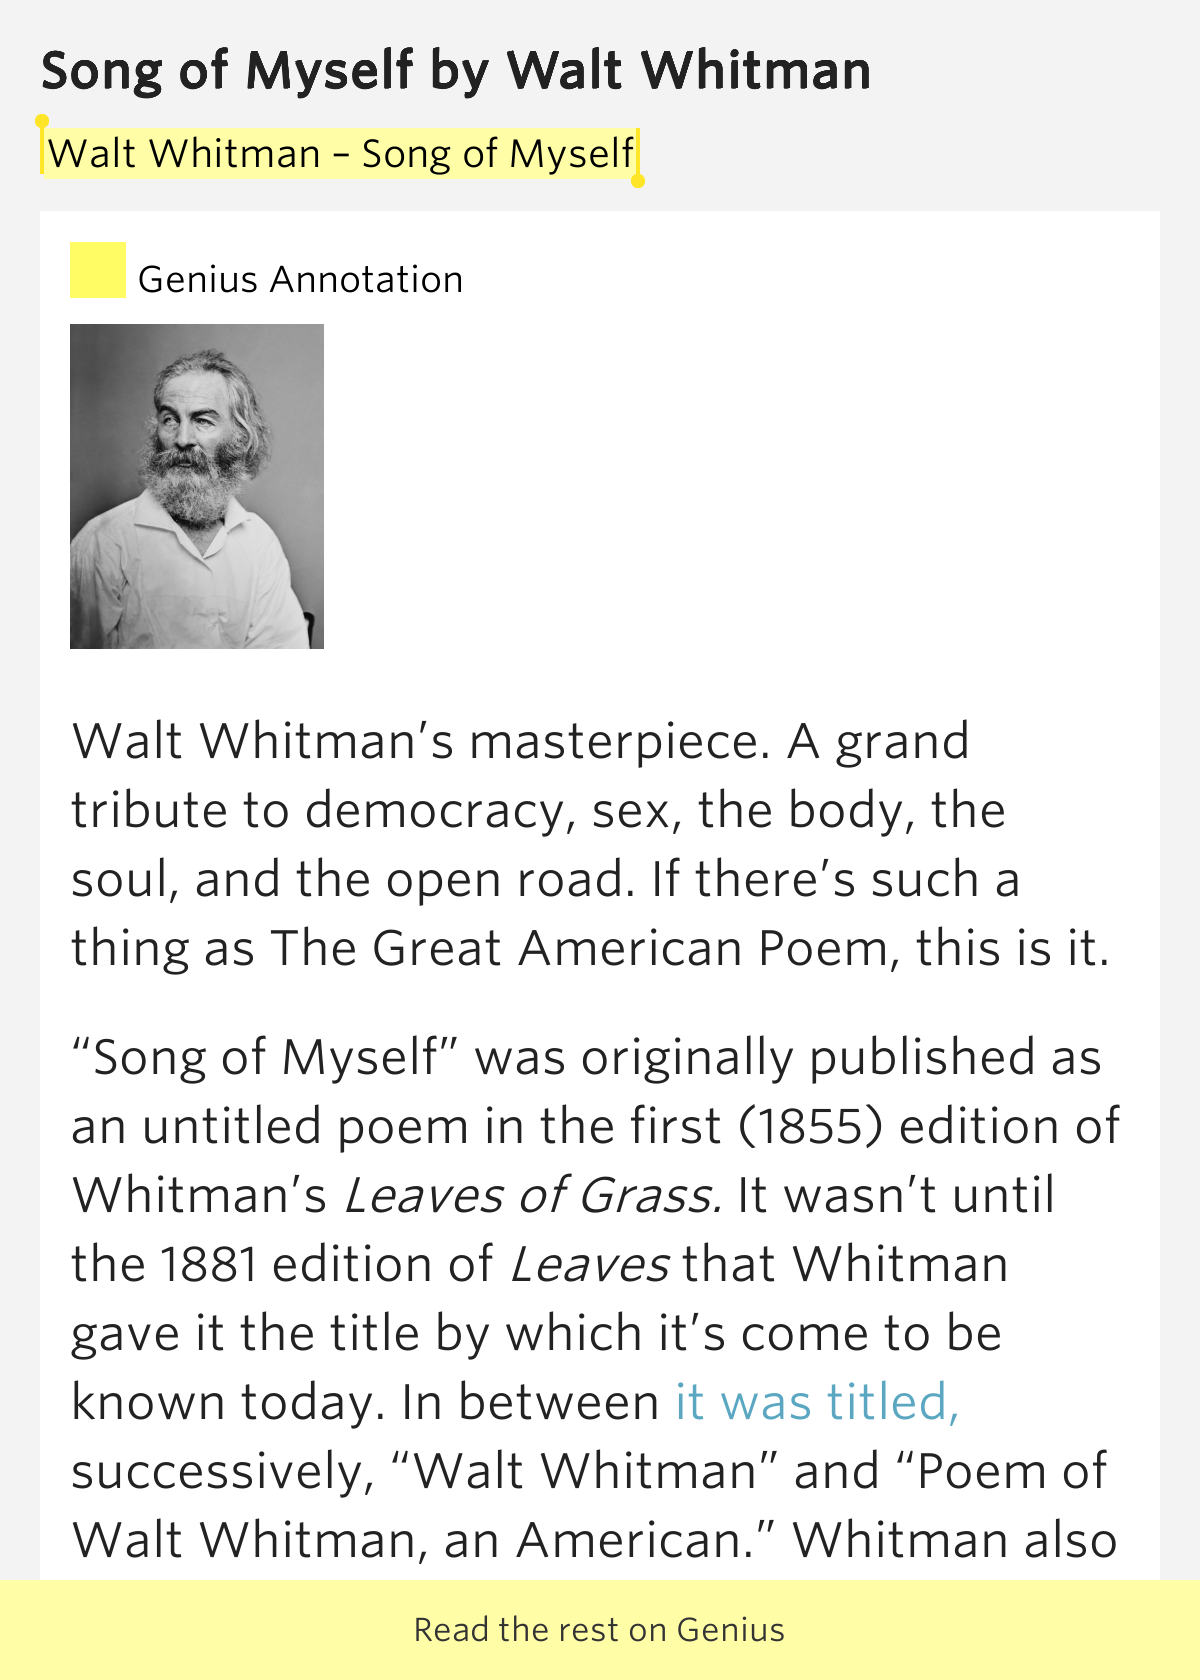 an analysis of the sexuality in walt whitmans poems song of myself and leaves of grass In song of myself, walt whitman celebrates the self the speaker of the poem (the i) speaks not just for himself but for all mankind, praising the joy and wonder of experiencing nature he enjoys the union of his physical and spiritual selves in this 52-part long poem, whitman celebrates the.